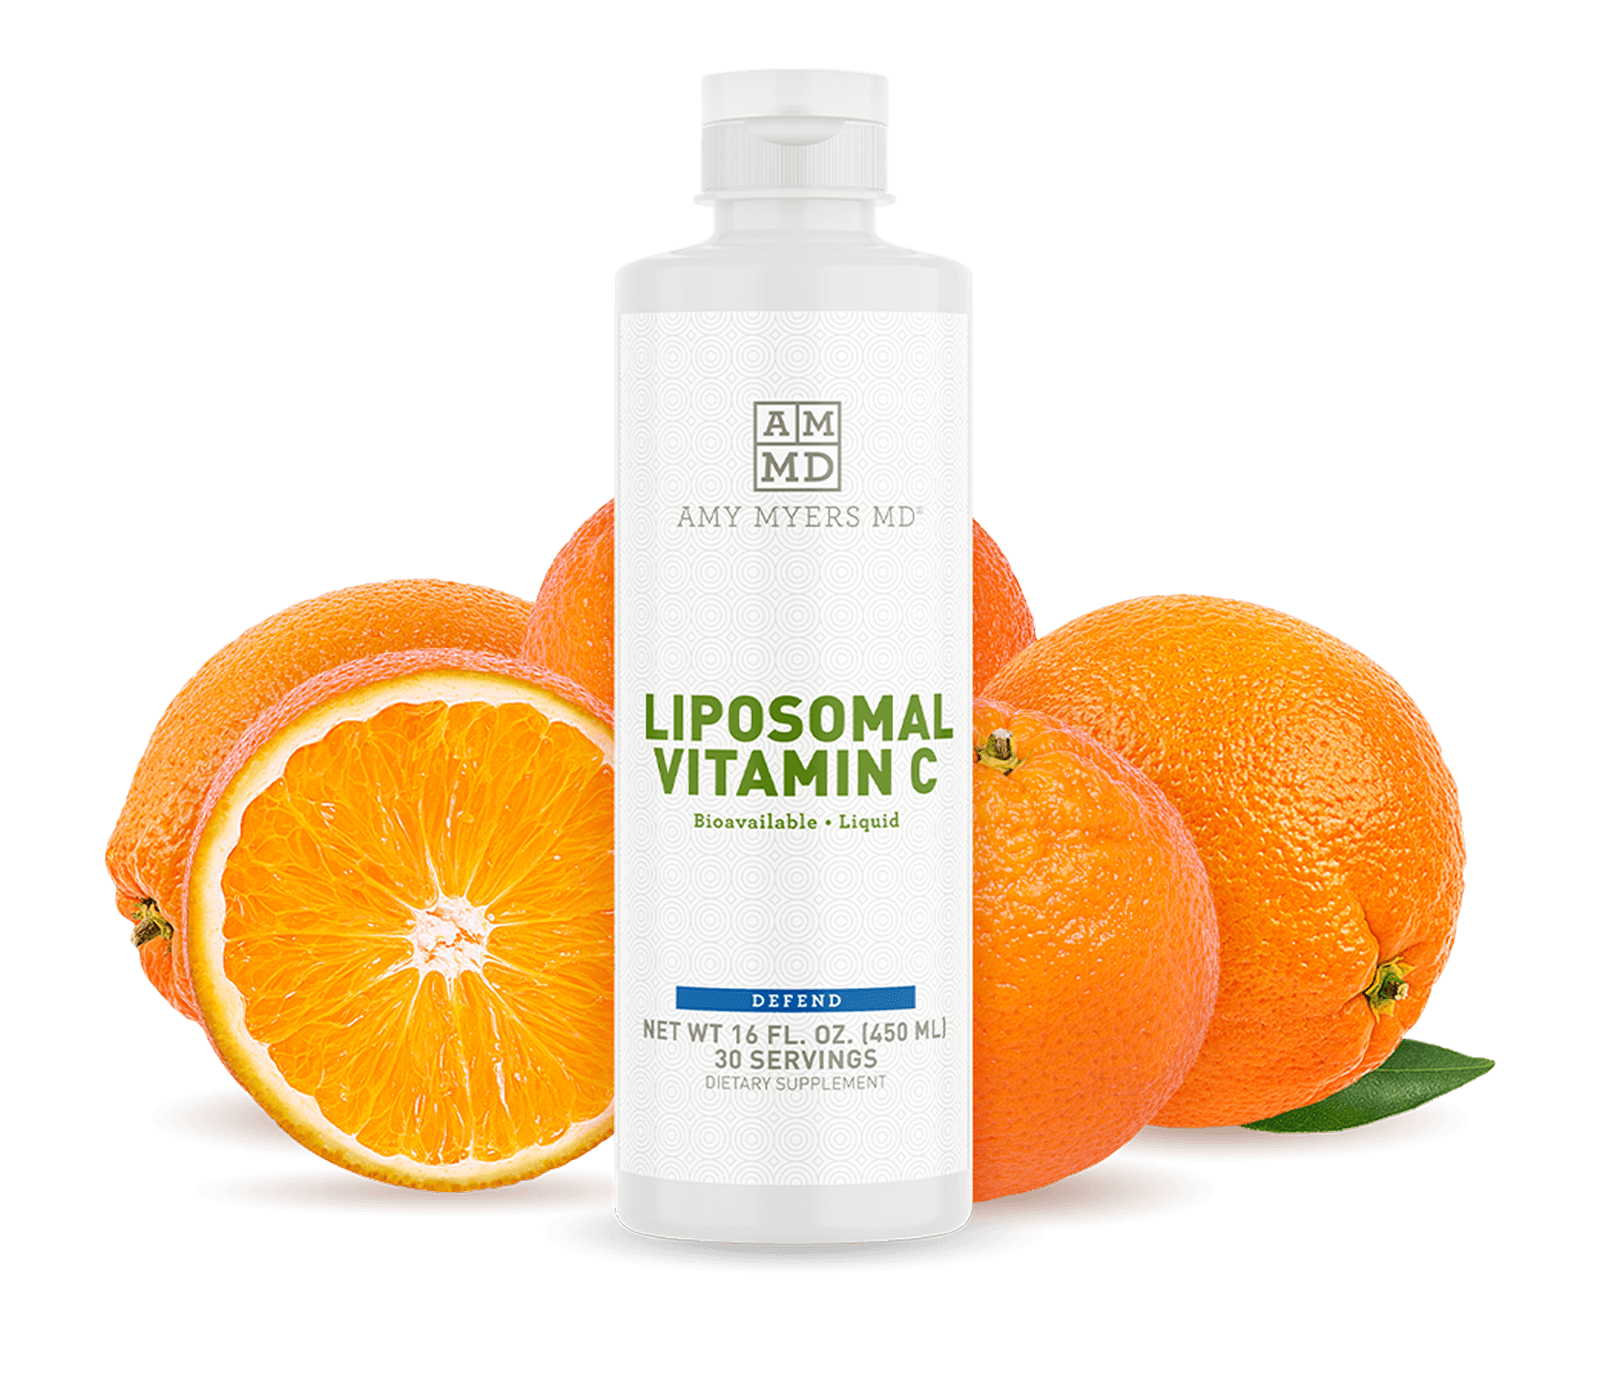 Liposomal Vitamin C bottle with oranges